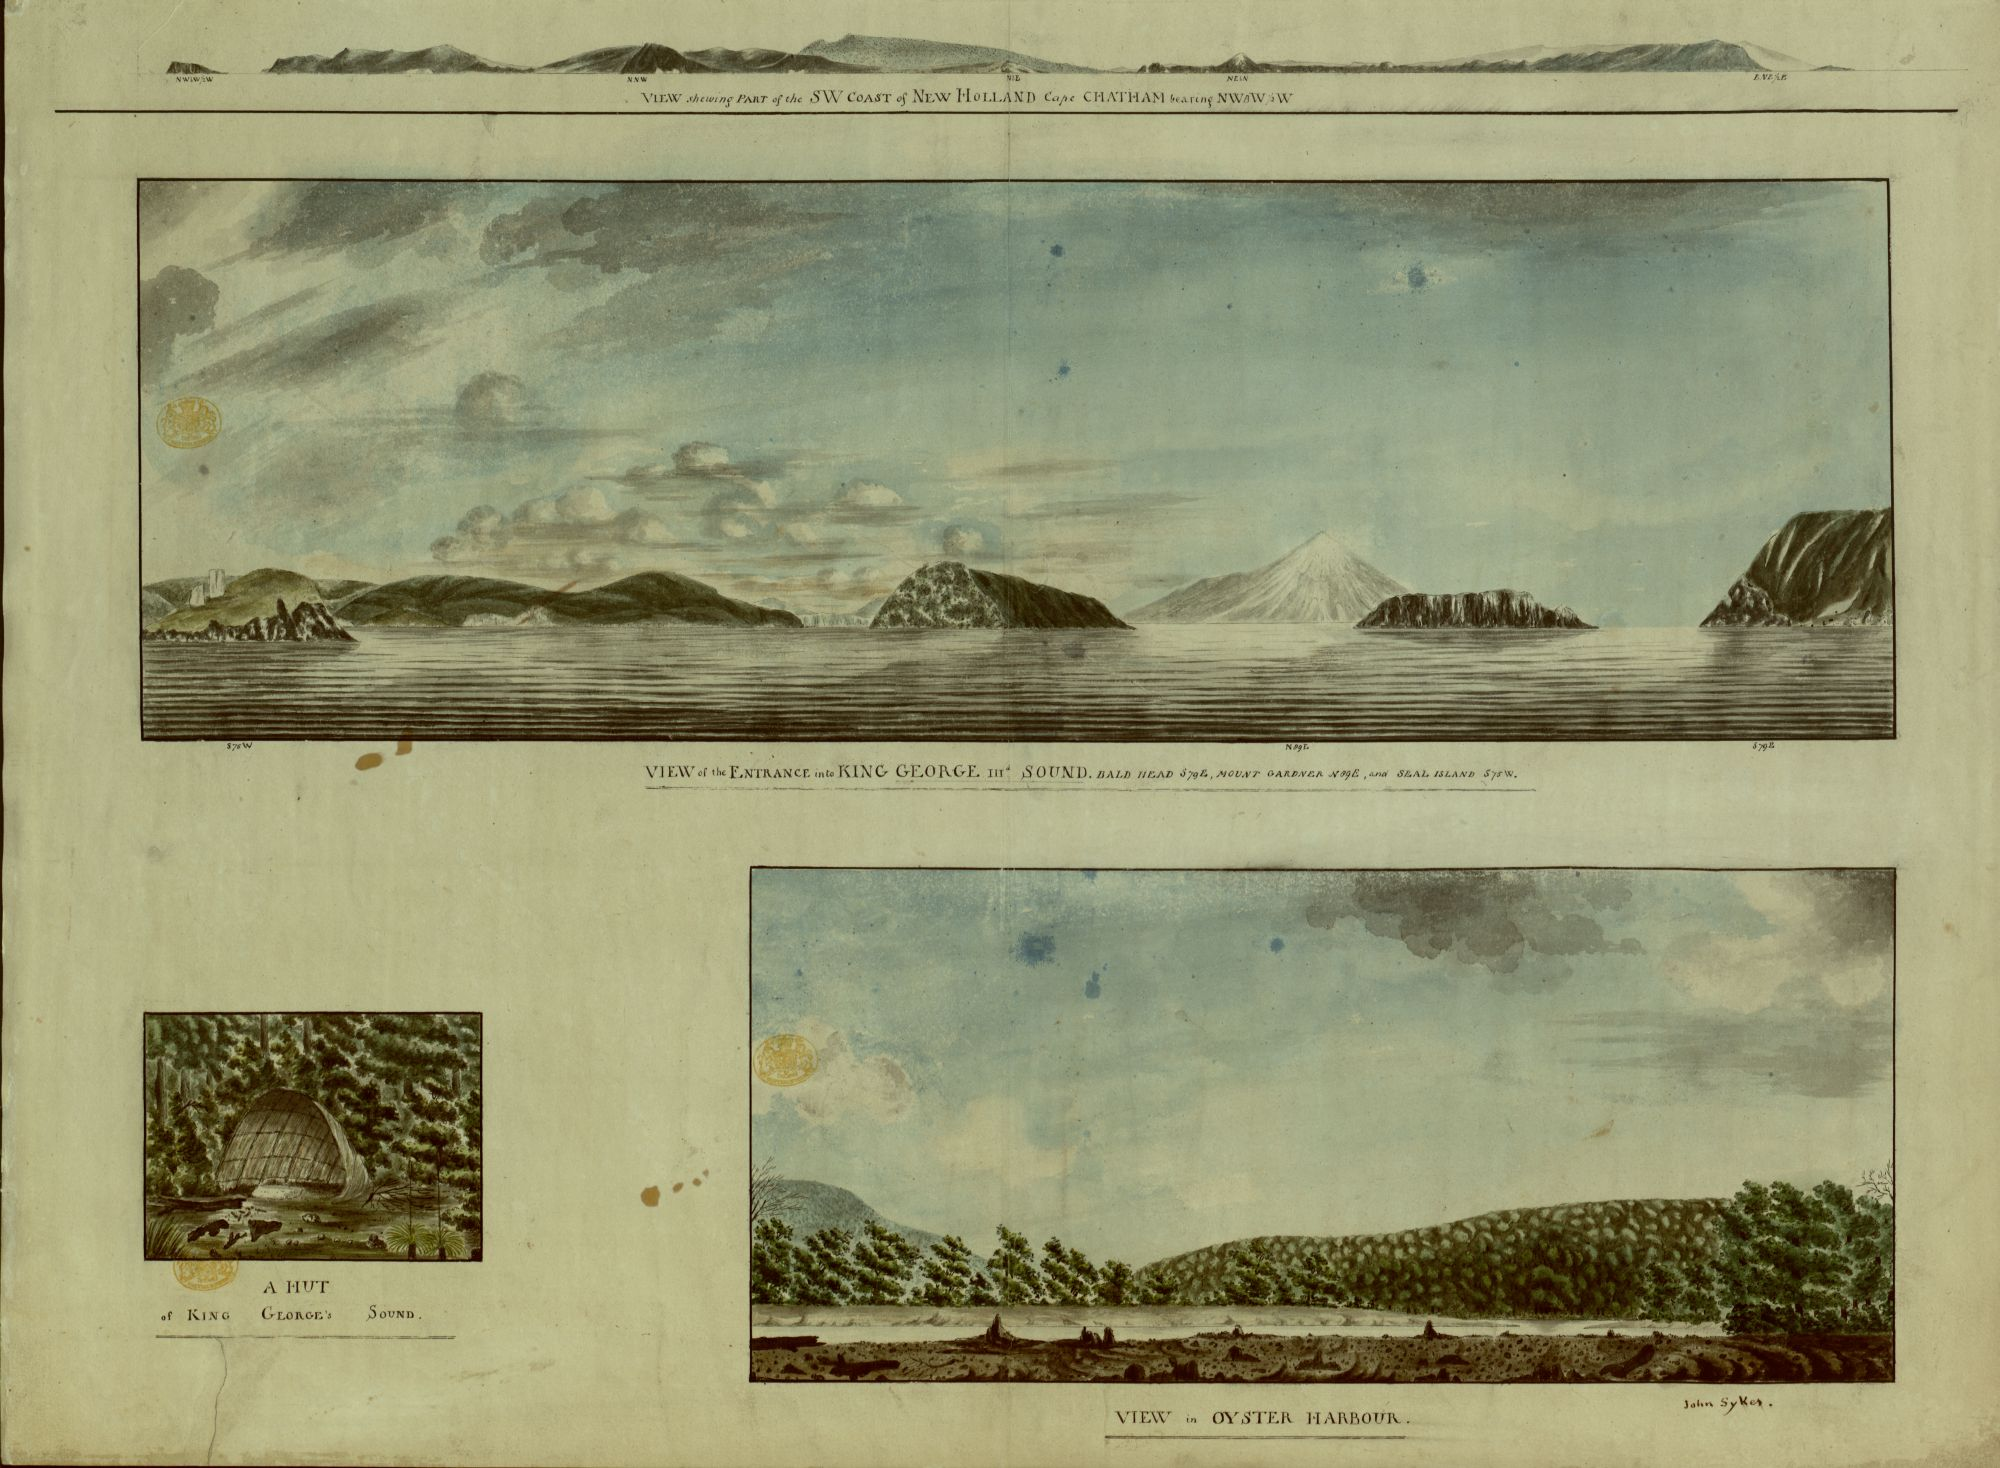 John Sykes (1781 or 1782 – 1837), VIEW of the ENTRANCE into KING GEORGE IIId SOUND: BALD HEAD S79E, MOUNT GARDNER N89E, and SEAL ISLAND S75W, [about 1792], pen and black ink with watercolour and gum arabic, 510 x 671 mm, Maps K.Top.116.65.